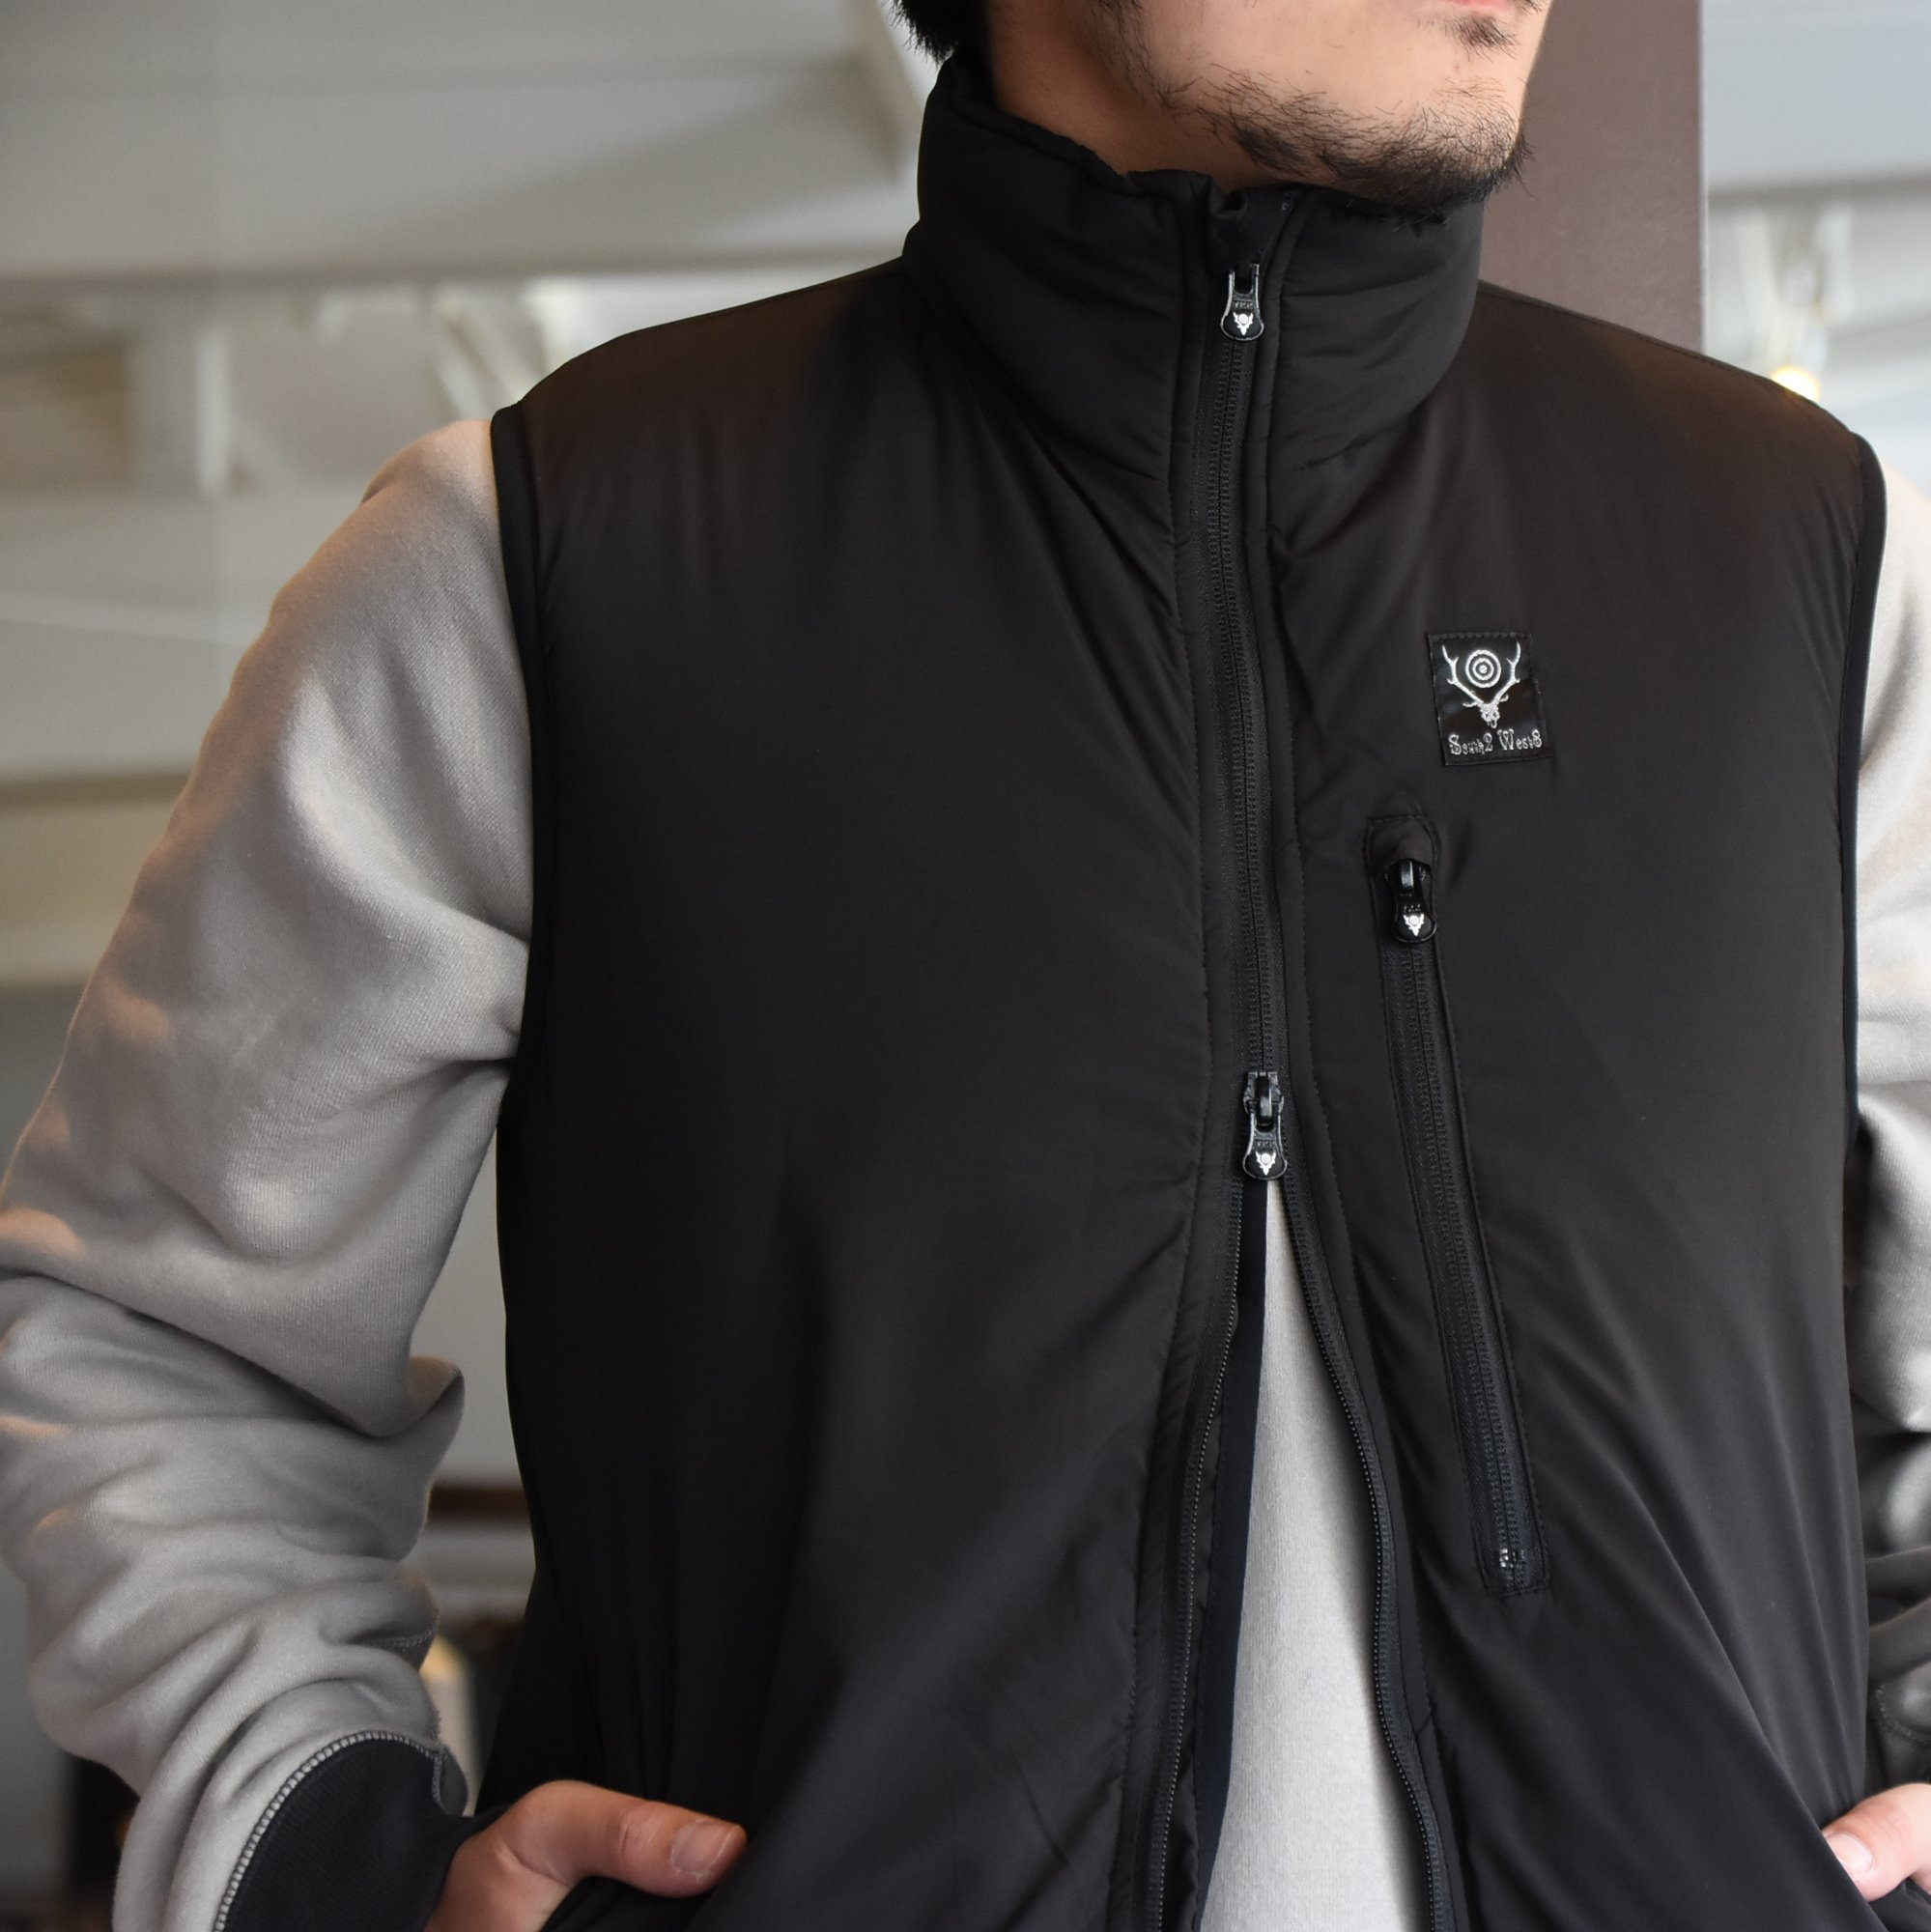 【2020】South2 West8(サウスツーウエストエイト)Insulator Vest-Peach Skin-BLACK- #HM813(3)